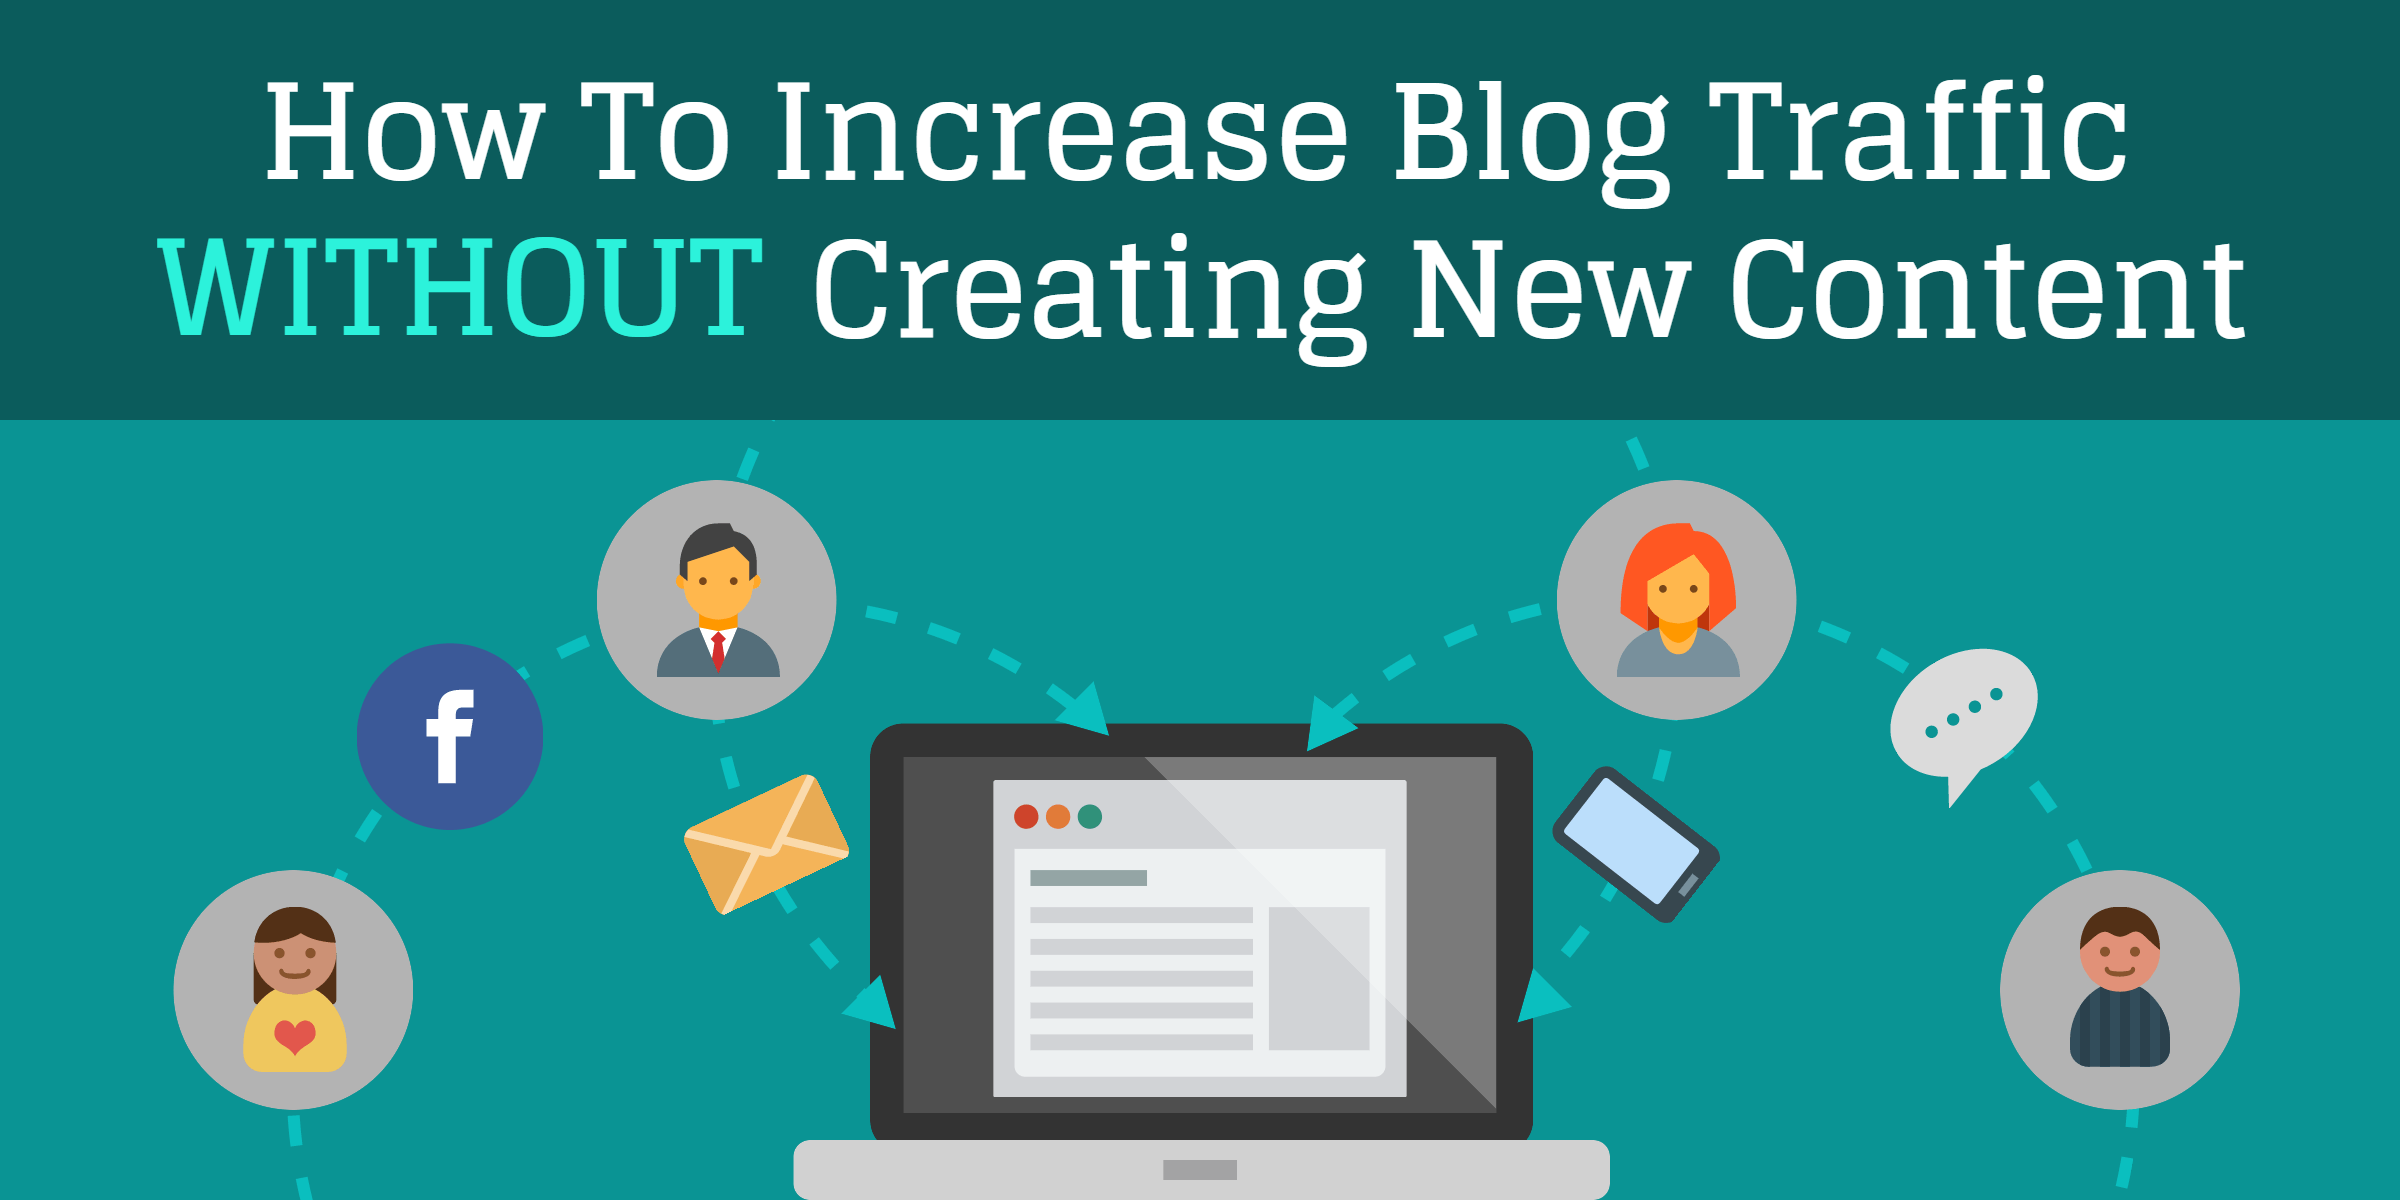 Increase blog traffic without creating new content